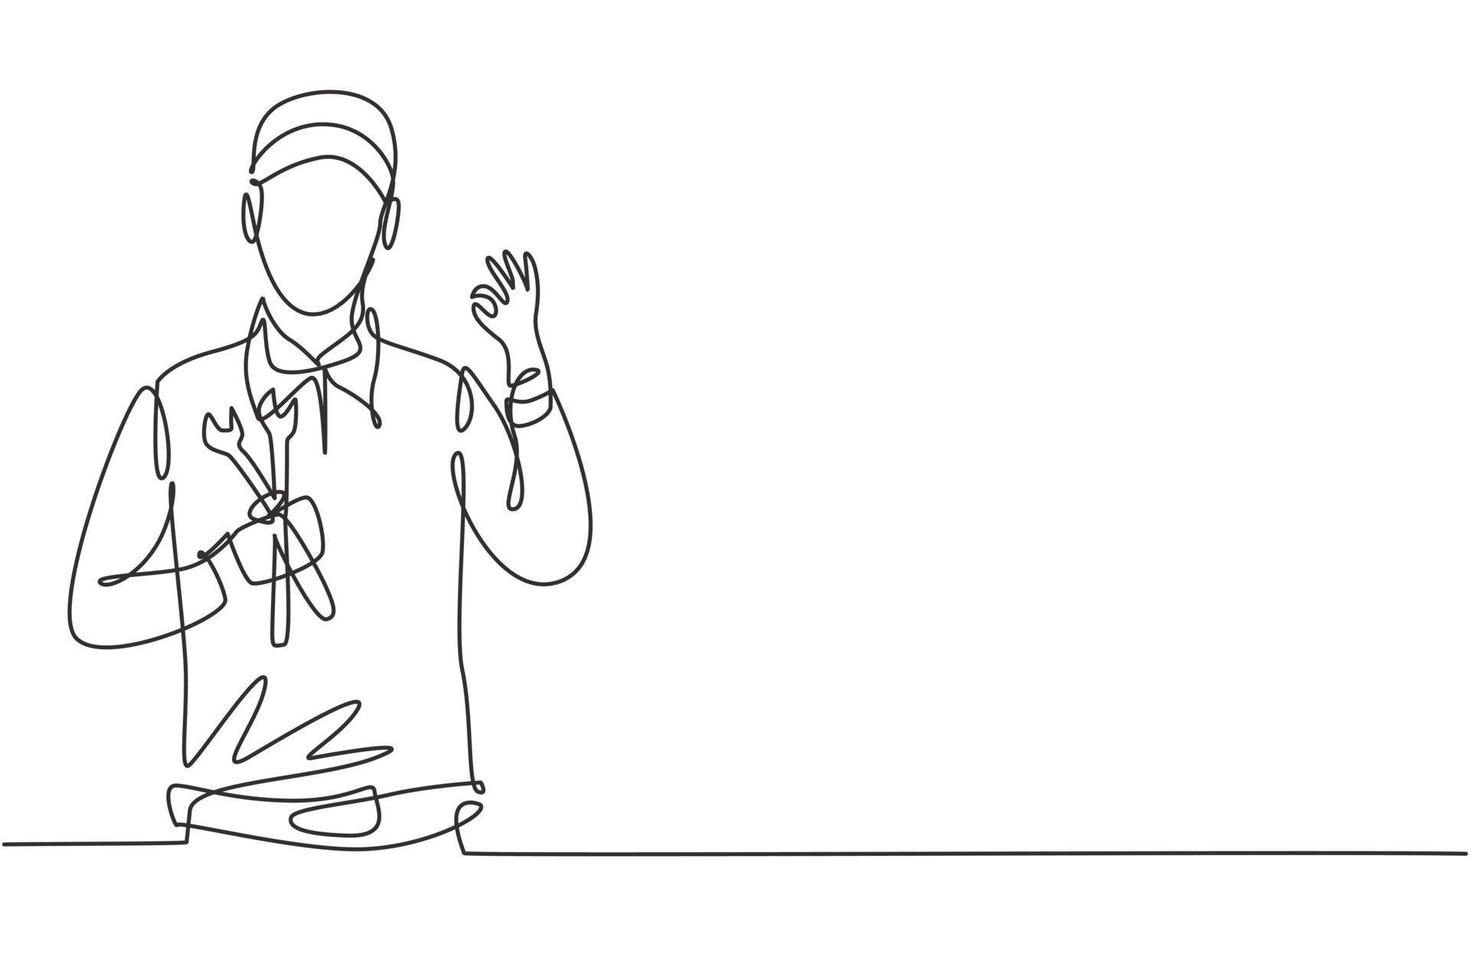 Continuous one line drawing male mechanic with gesture okay and holding wrench works to fix broken car engine in garage. Success business concept. Single line draw design vector graphic illustration